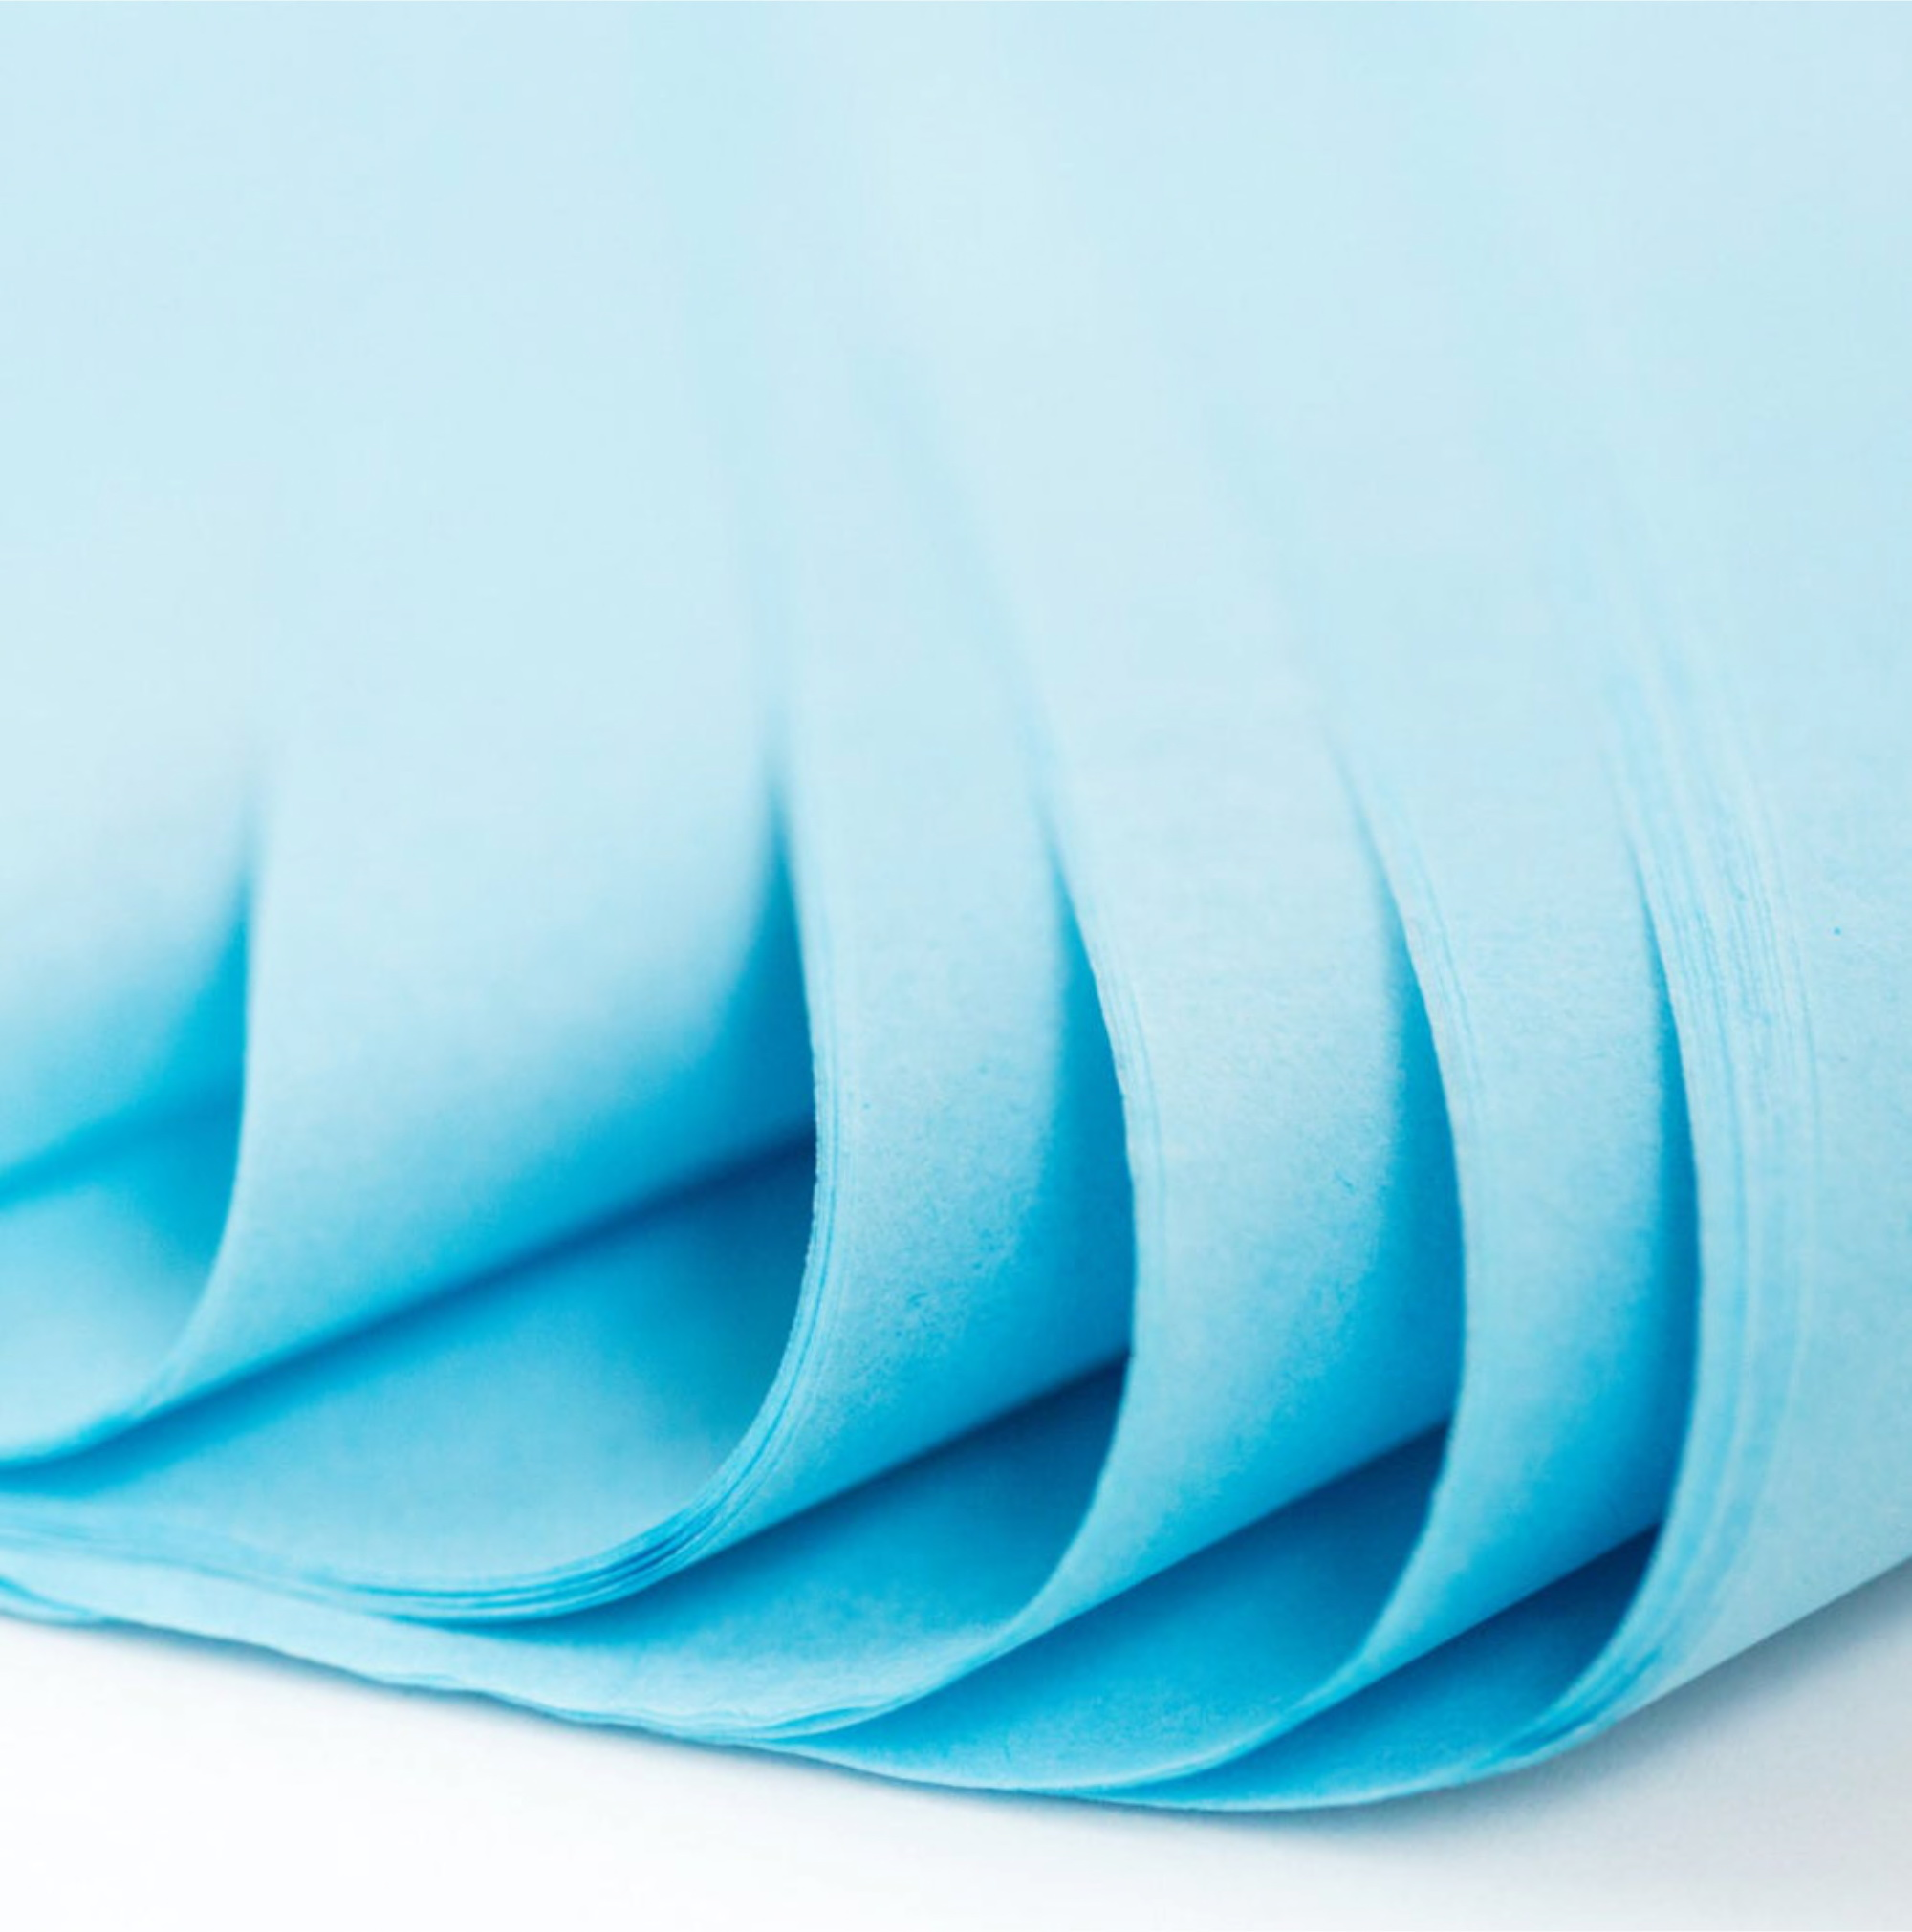 500 Sheets Acid Free Tissue Paper 500x750mm 17gsm Light Blue